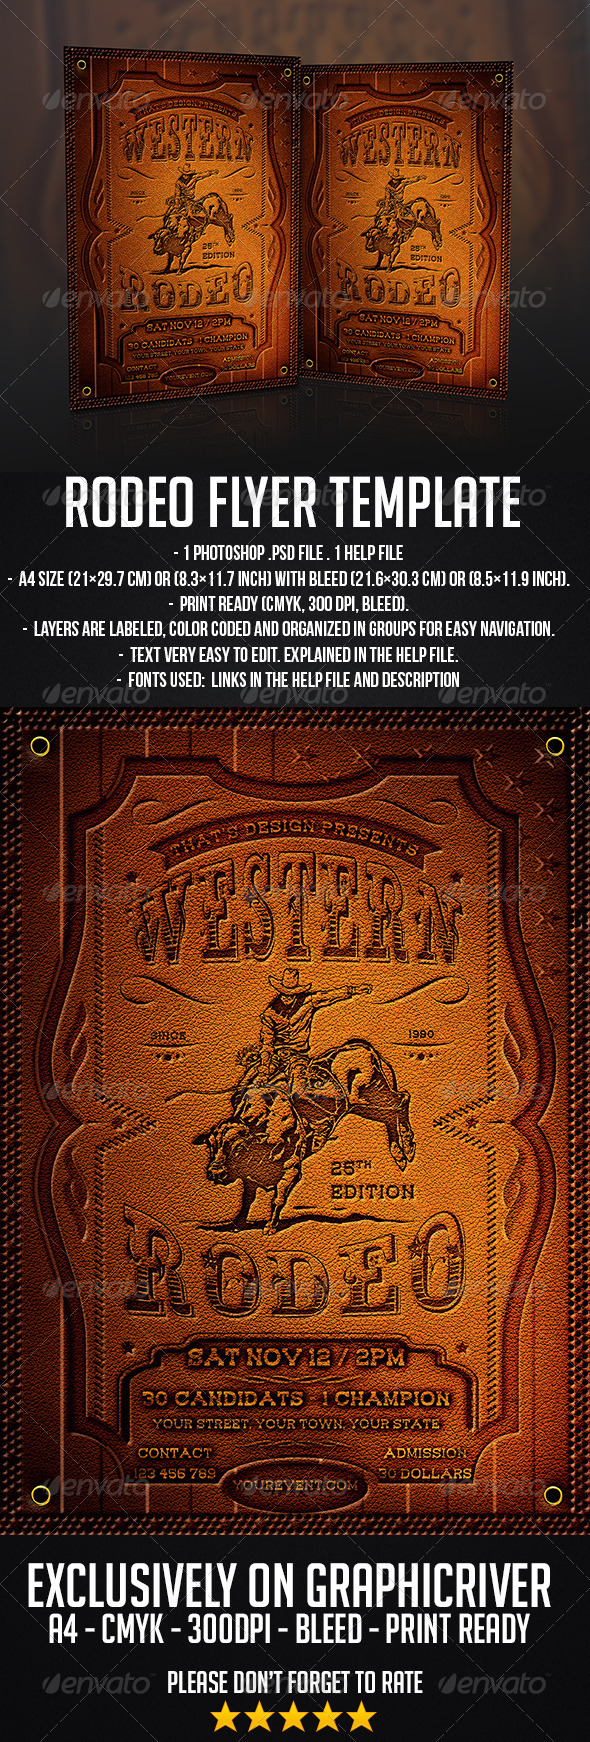 GraphicRiver Rodeo Flyer Template 7252302